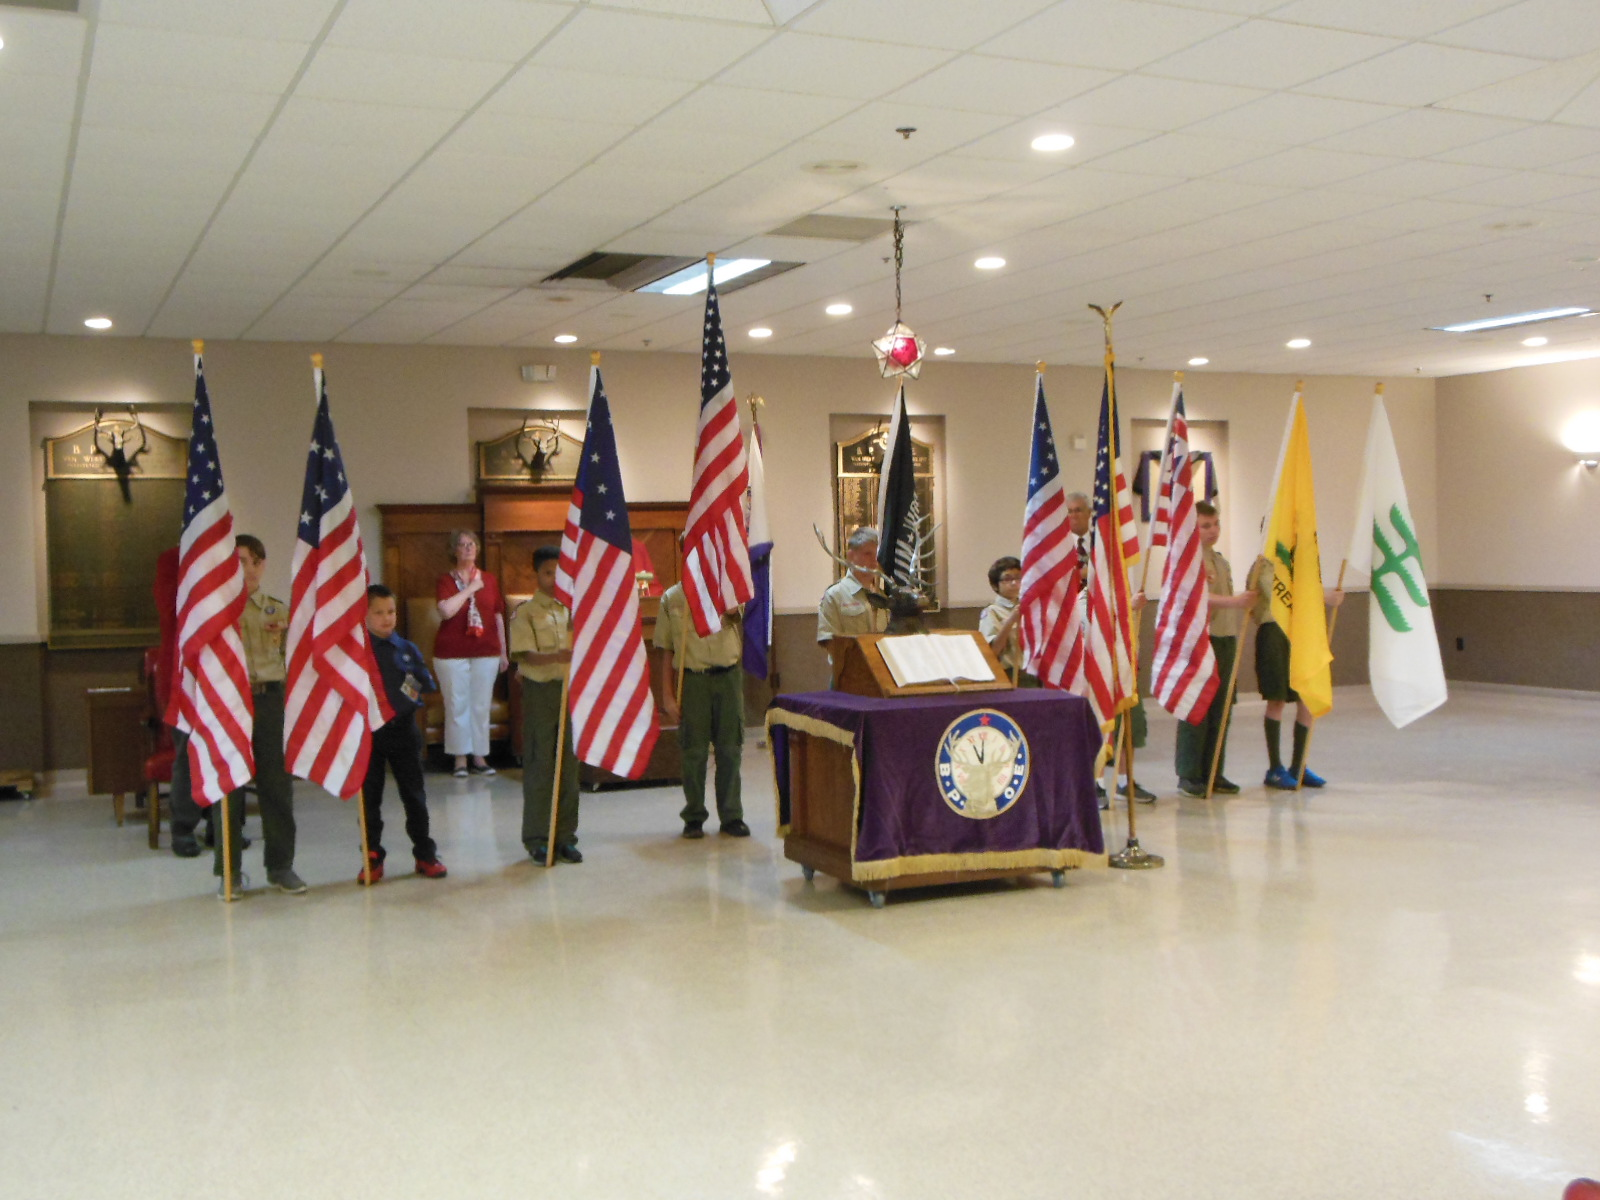 ictured are the scouts with the various flags of this country.